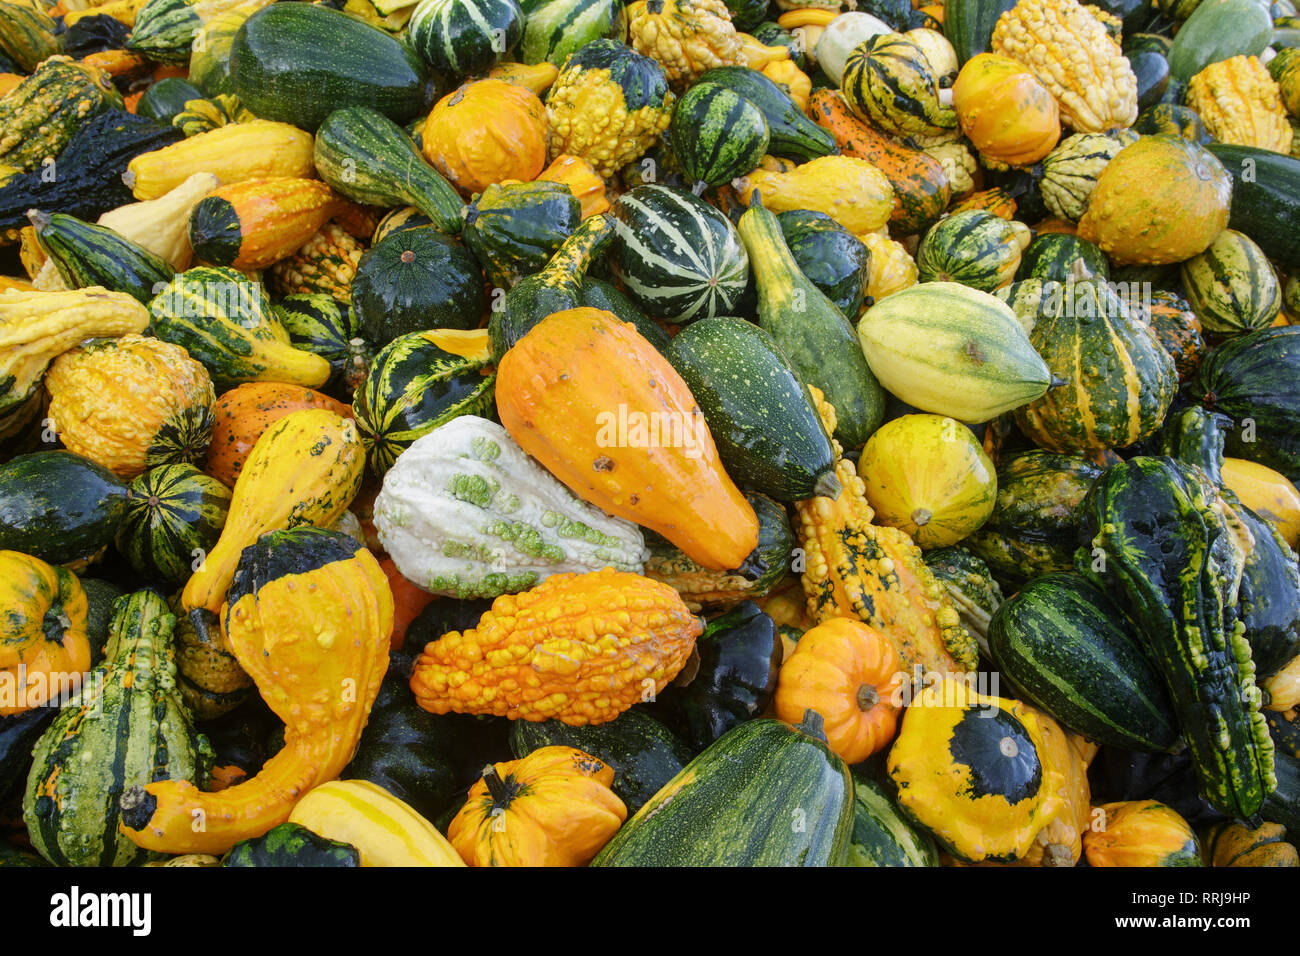 botany, ornamental pumpkins, Switzerland, Additional-Rights-Clearance-Info-Not-Available - Stock Image